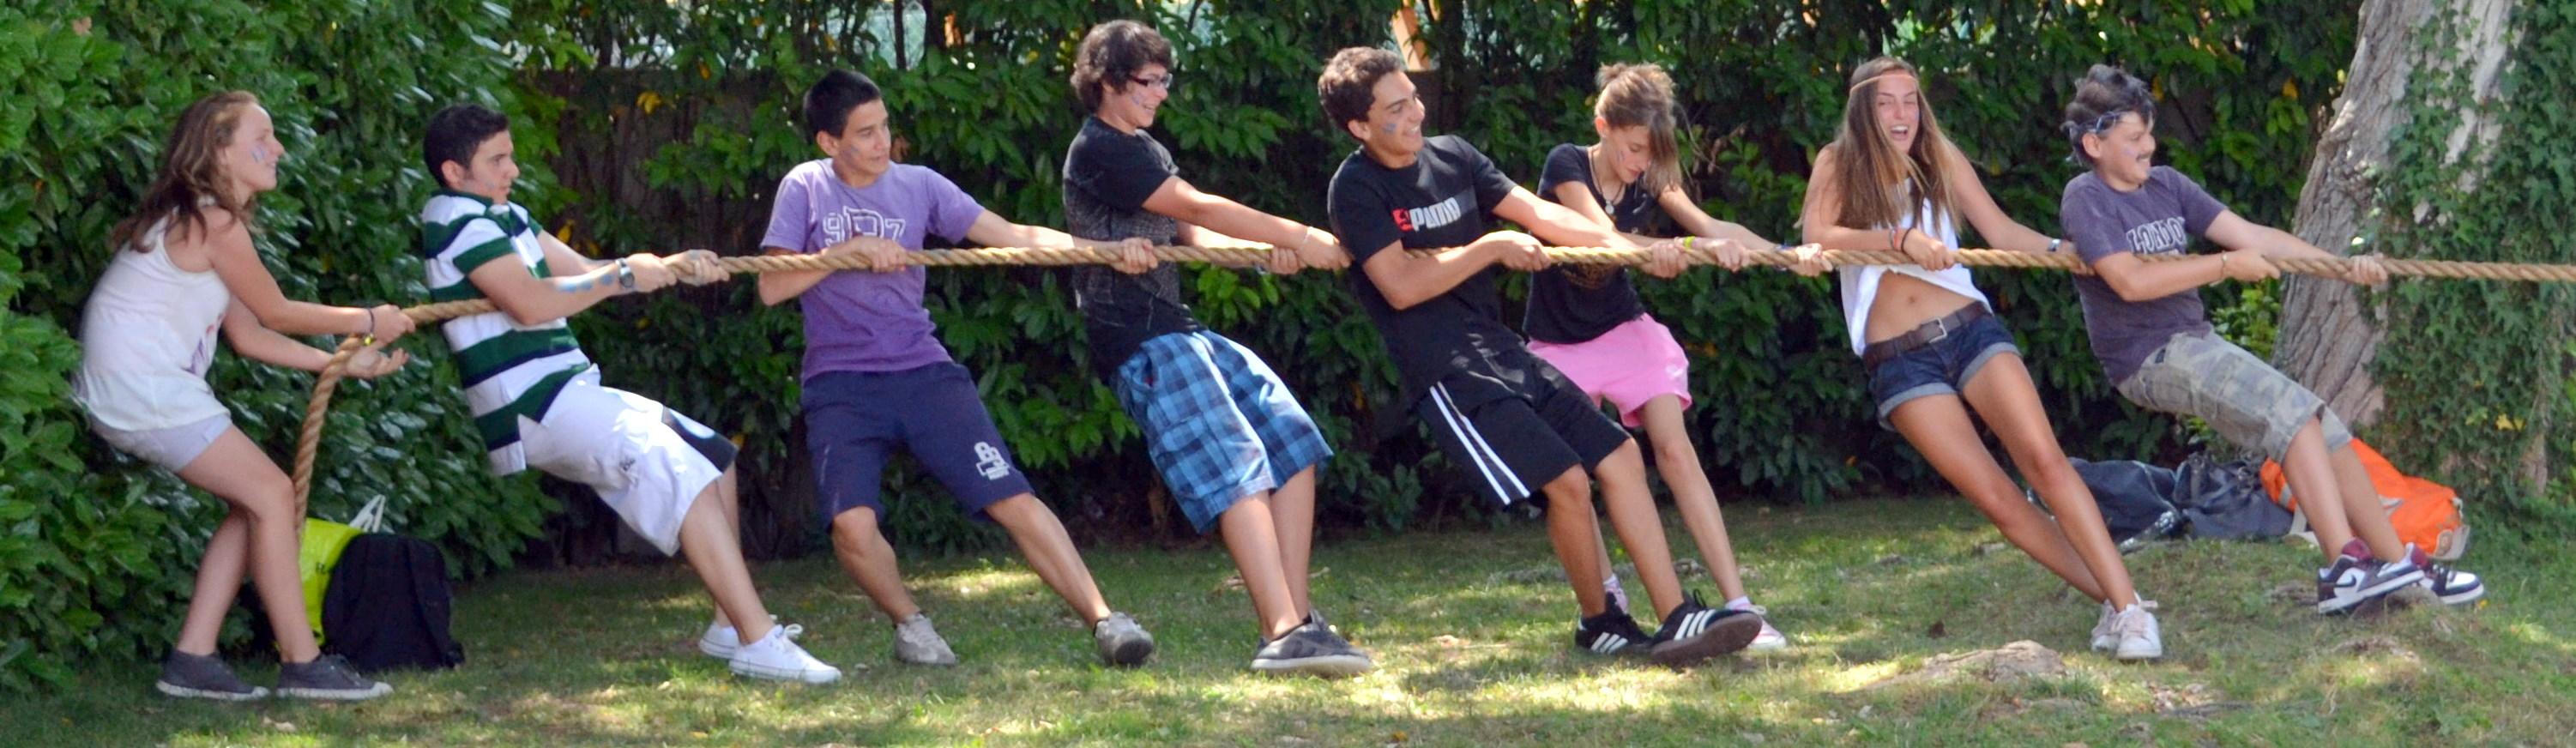 students pulling rope in their afterclass program